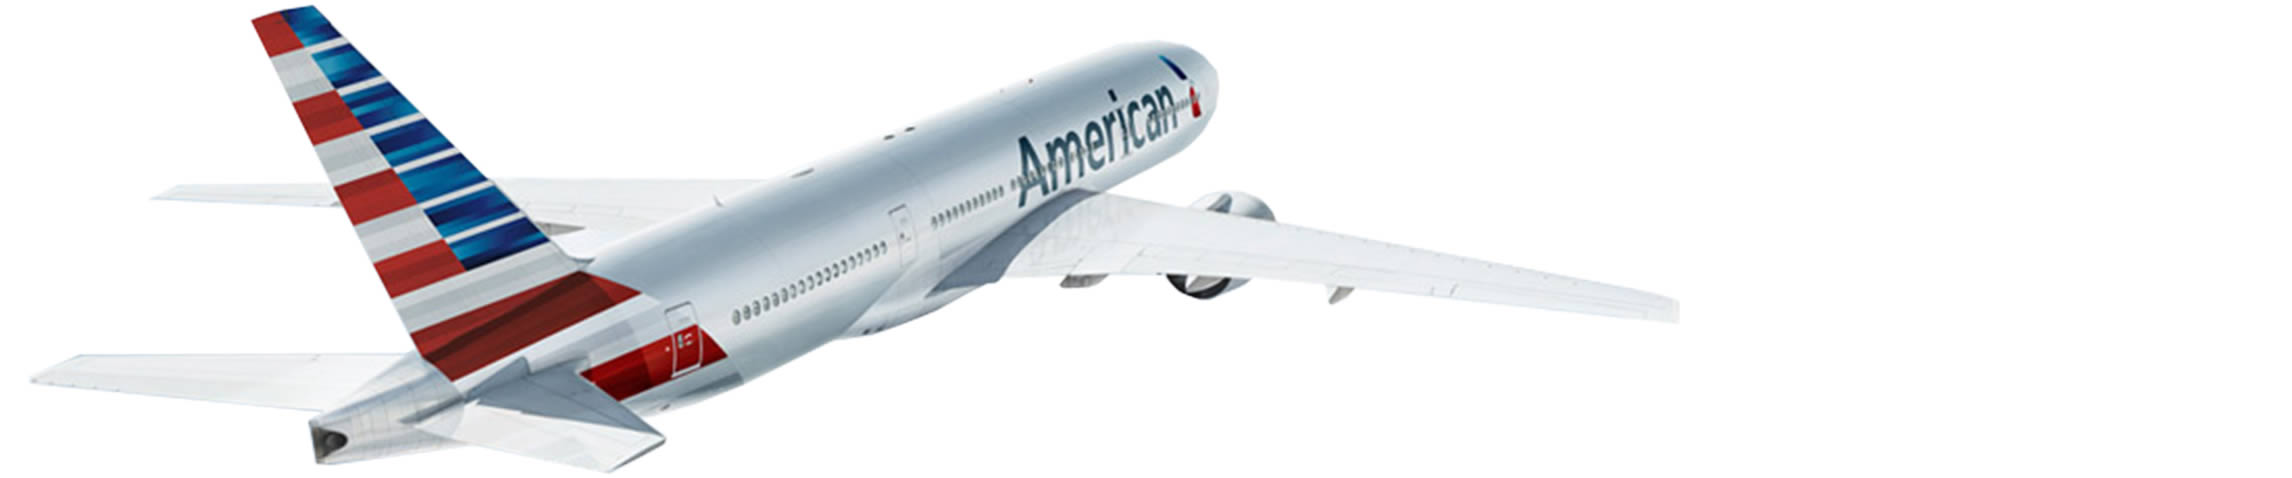 A plane with the new American livery - American Airlines PNG